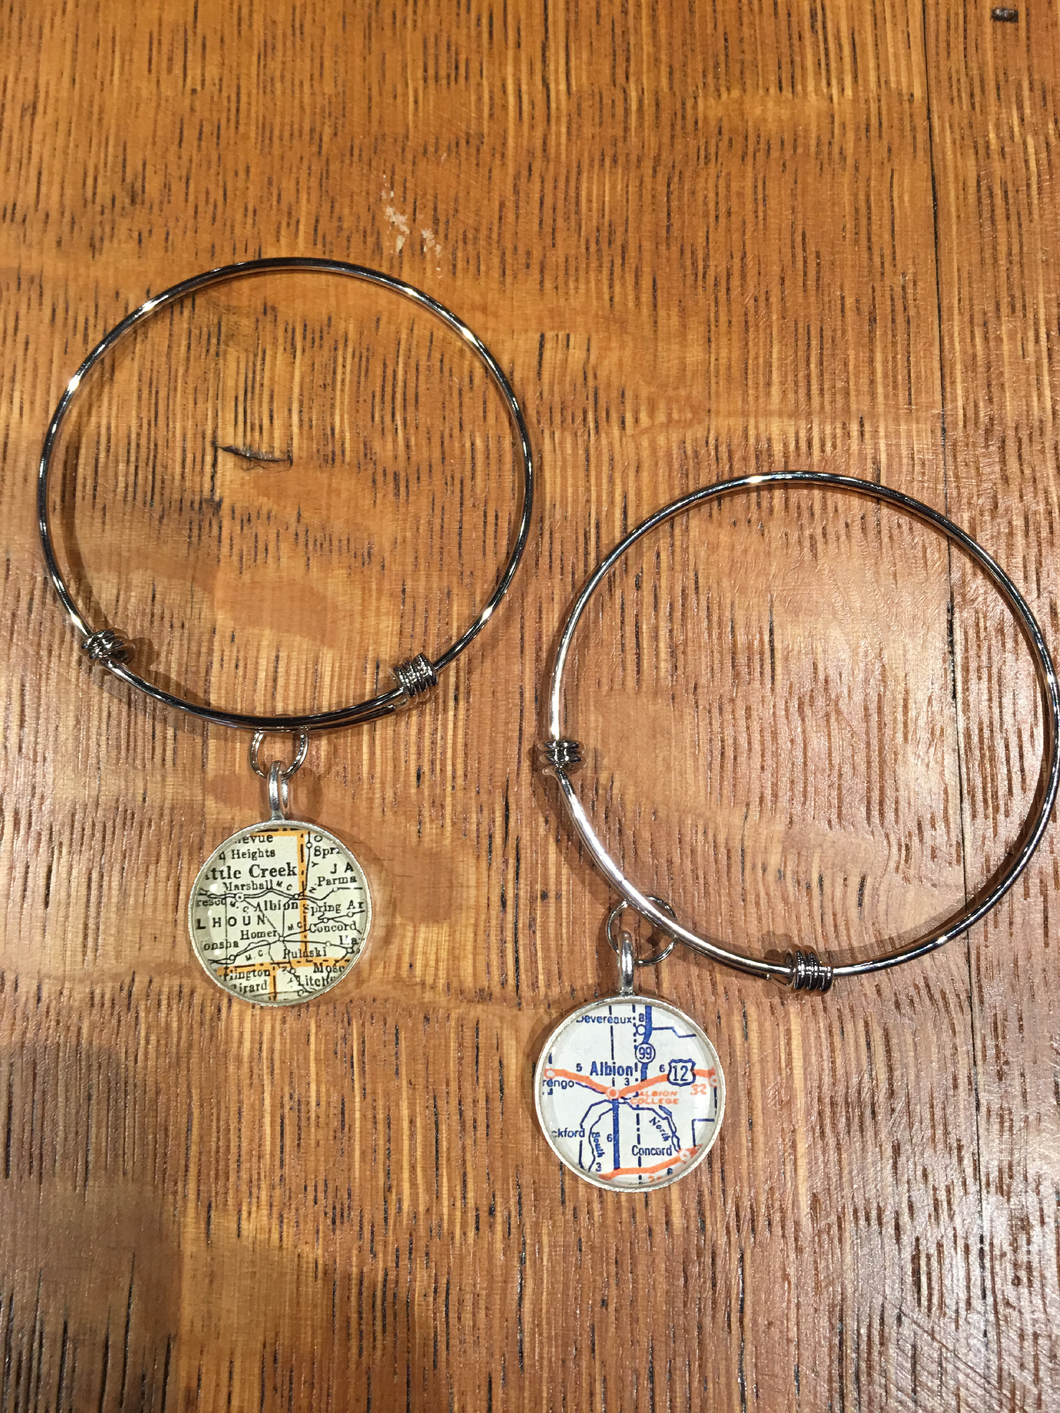 Albion Map Pendant Bracelets - Chella's Collection